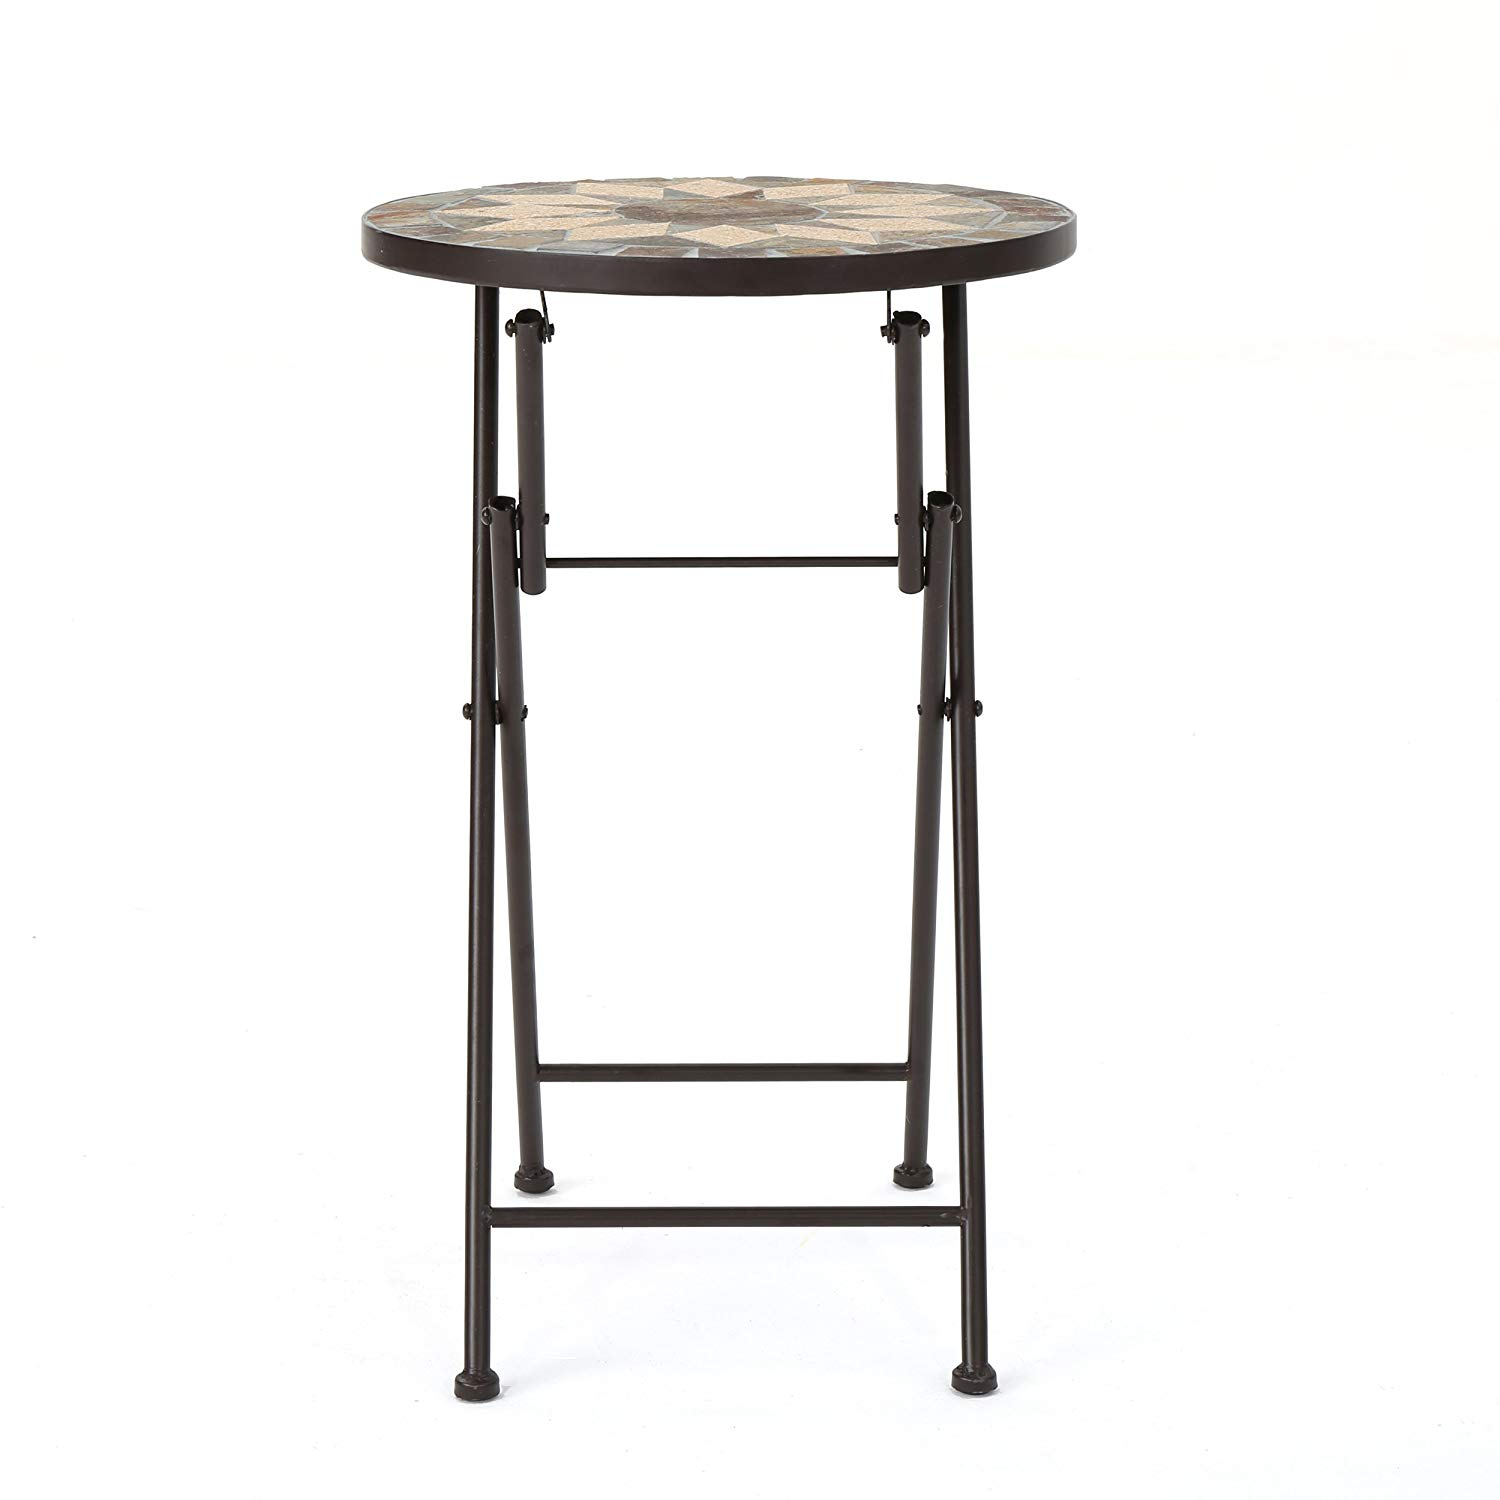 christopher knight home silvester ckh outdoor zaltana mosaic accent table tables beige and black garden rattan side glass top victorian coffee room essentials lamp small iron